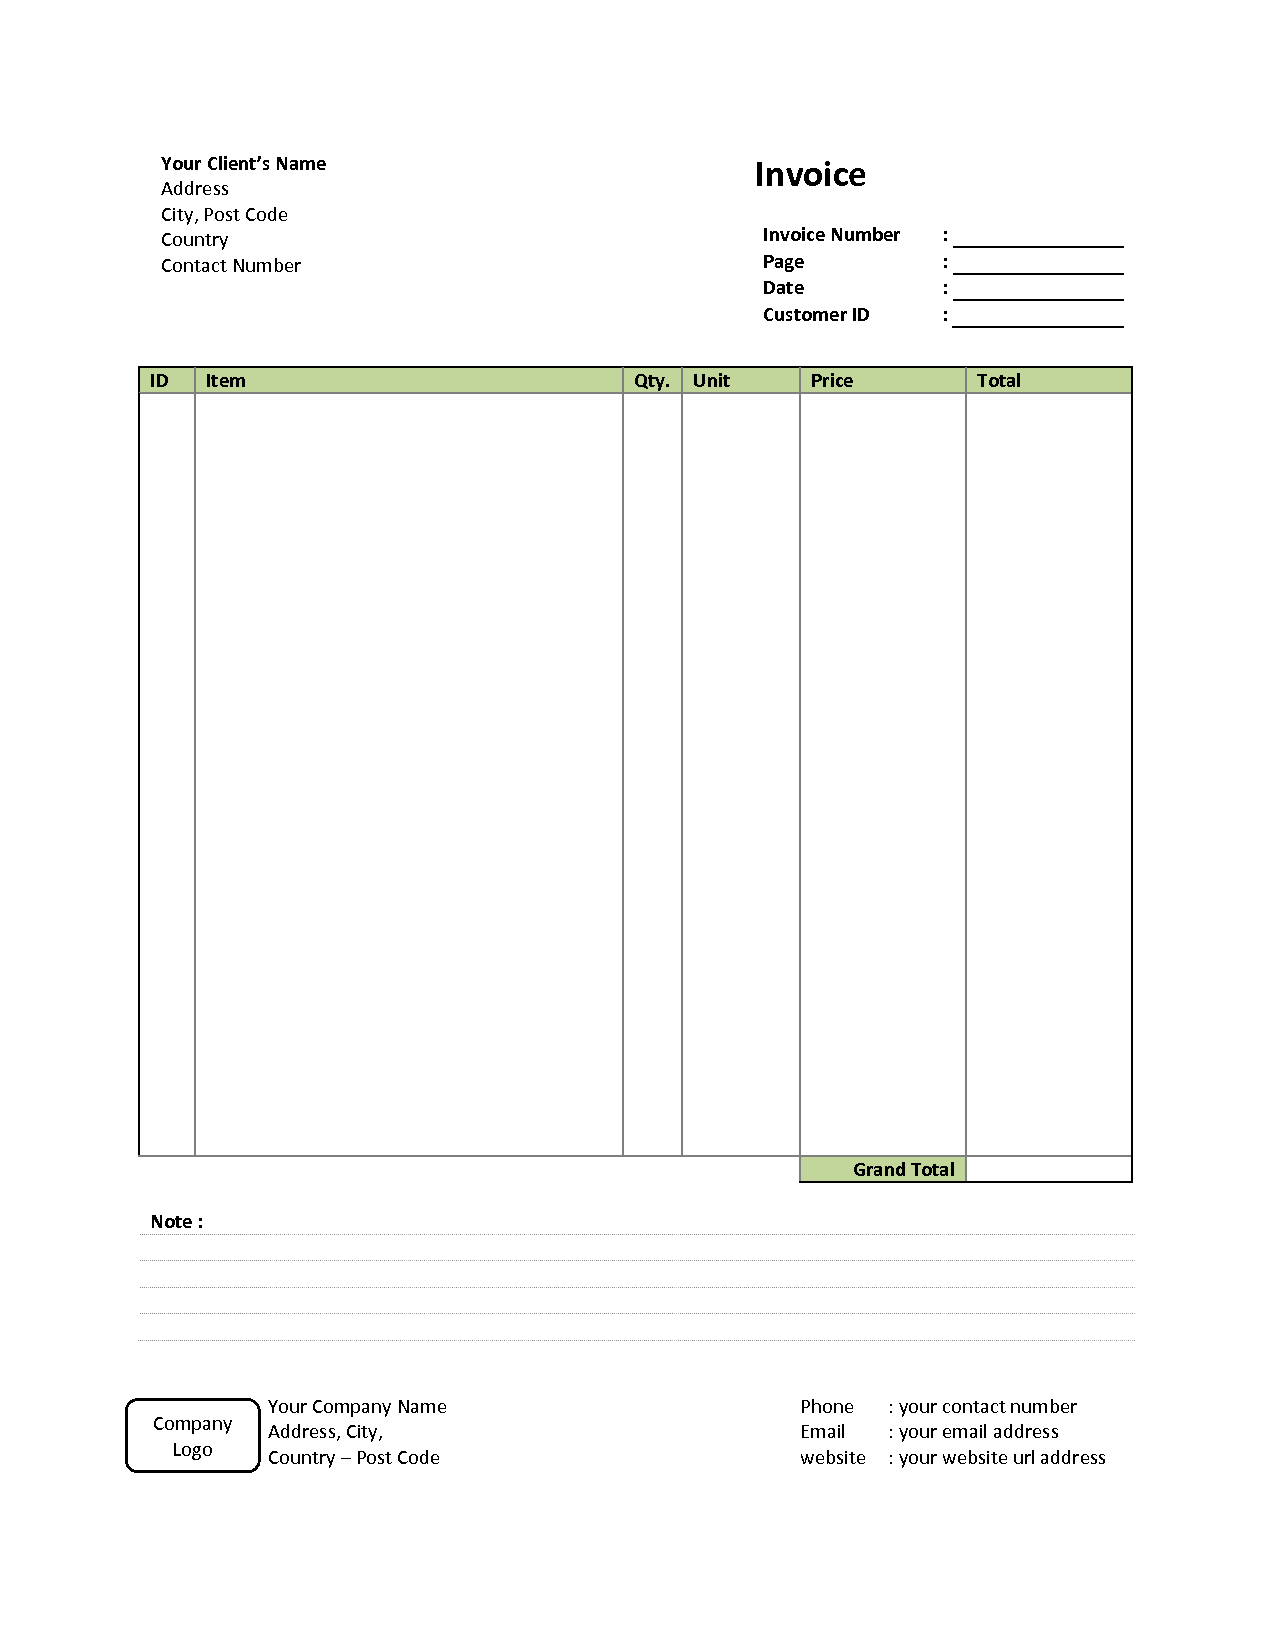 Free Templates for Invoices Printable and Simple Invoice Template Free to Do List